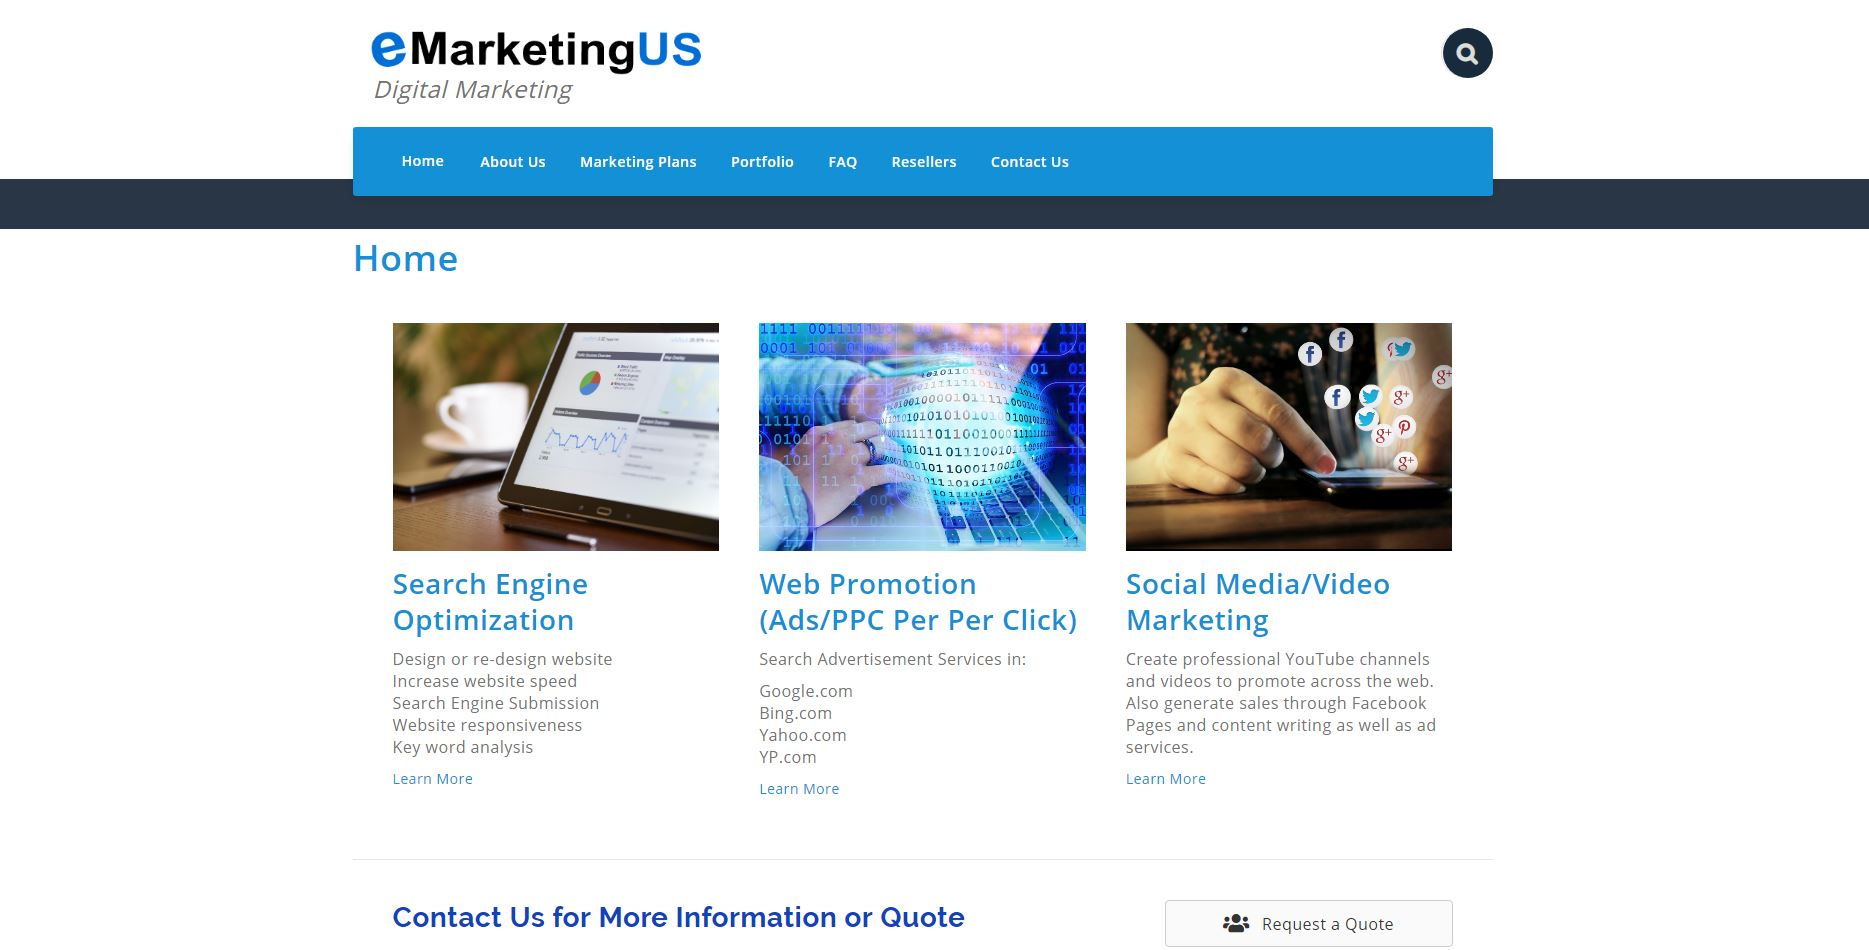 www.emarketingus.com